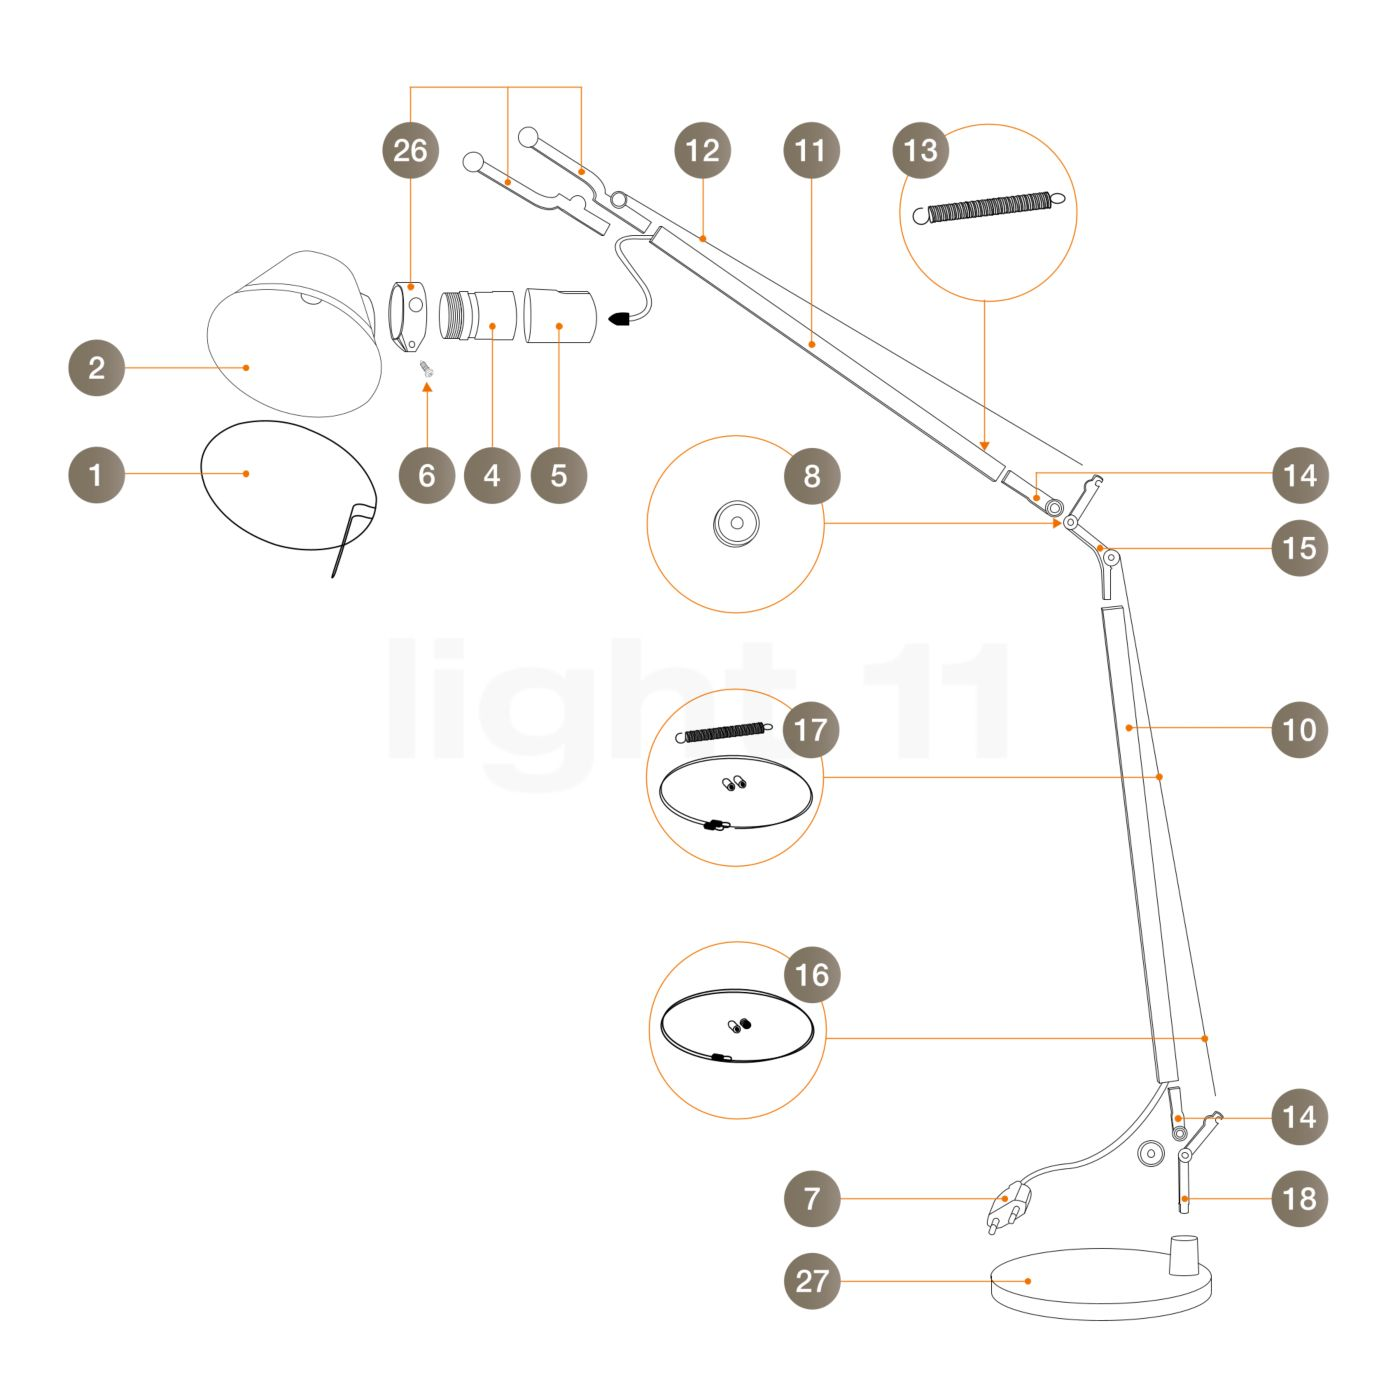 Buy Artemide Spare parts for Tolomeo Lettura, alu at